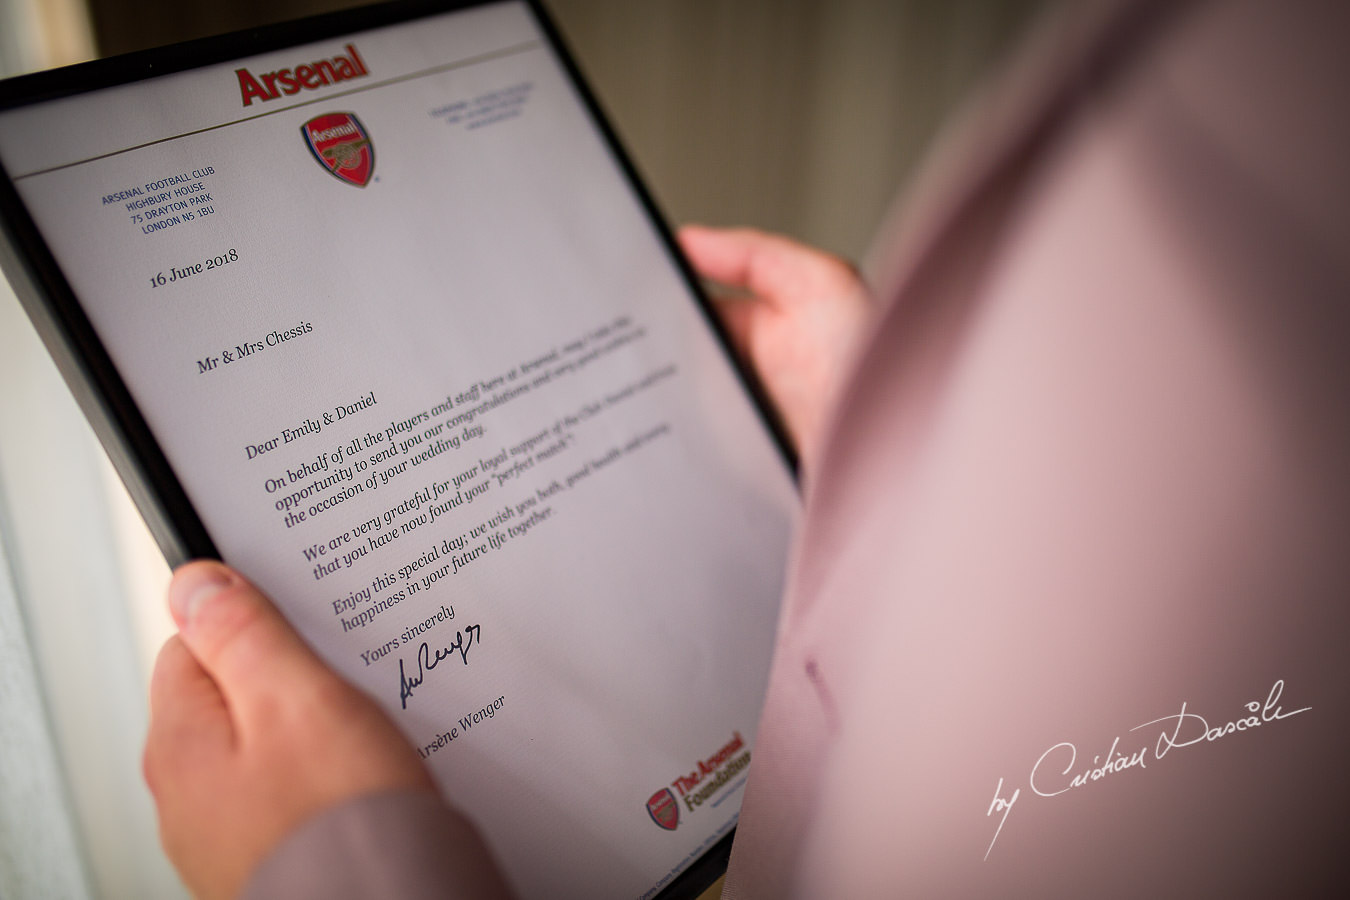 Groom reading the congratulations letter from Arsene Wenger at a Beautiful Wedding at Elias Beach Hotel captured by Cyprus Photographer Cristian Dascalu.